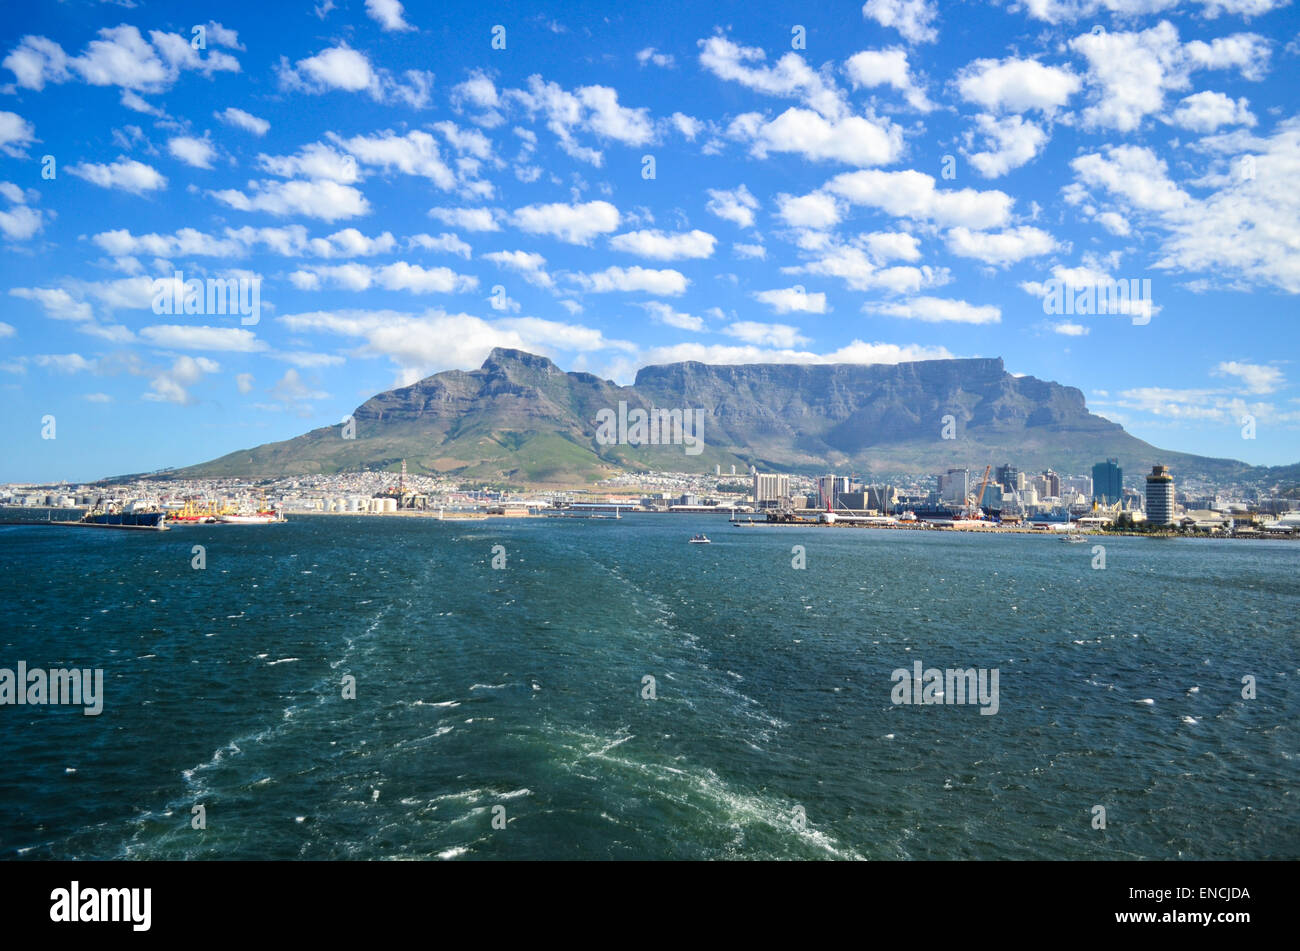 Trace of a cargo vessel in the sea, leaving the port of Cape Town, South Africa, and Table Mountain in the background - Stock Image